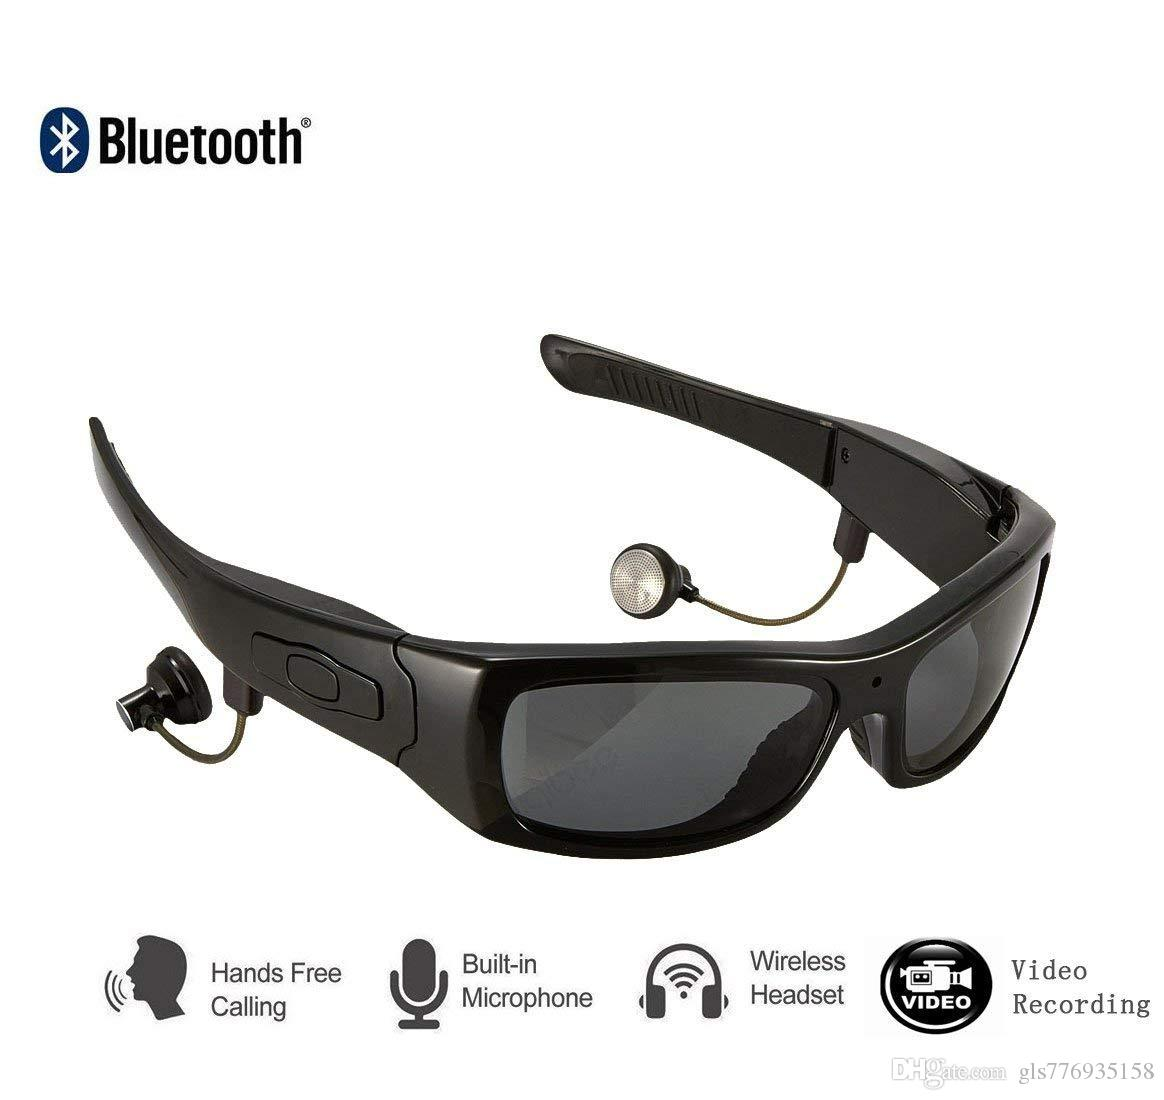 c33bf50518fe 2019 Bluetooth Sunglasses With 101080P Mini Camera Video Recording Polarized  UV400 Glasses With Detachable Speakers From Gls776935158